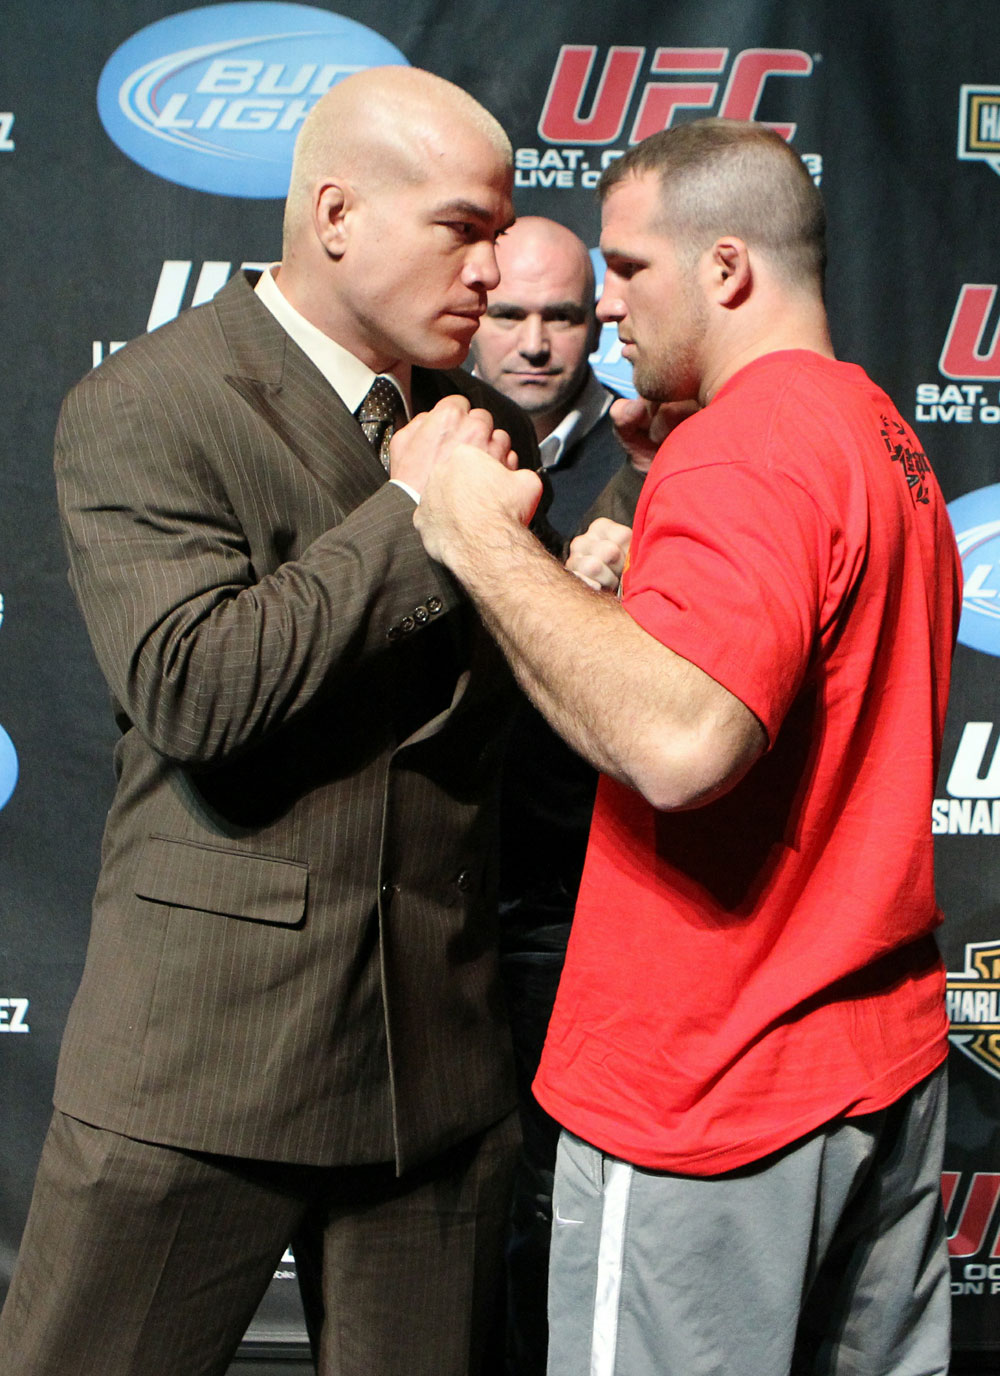 (L-R) Light heavyweights Tito Ortiz and Matt Hamill square off at the UFC 121 pre-fight press conference at the Walt Disney Concert Hall on October, 20 2010 in Los Angeles, California.